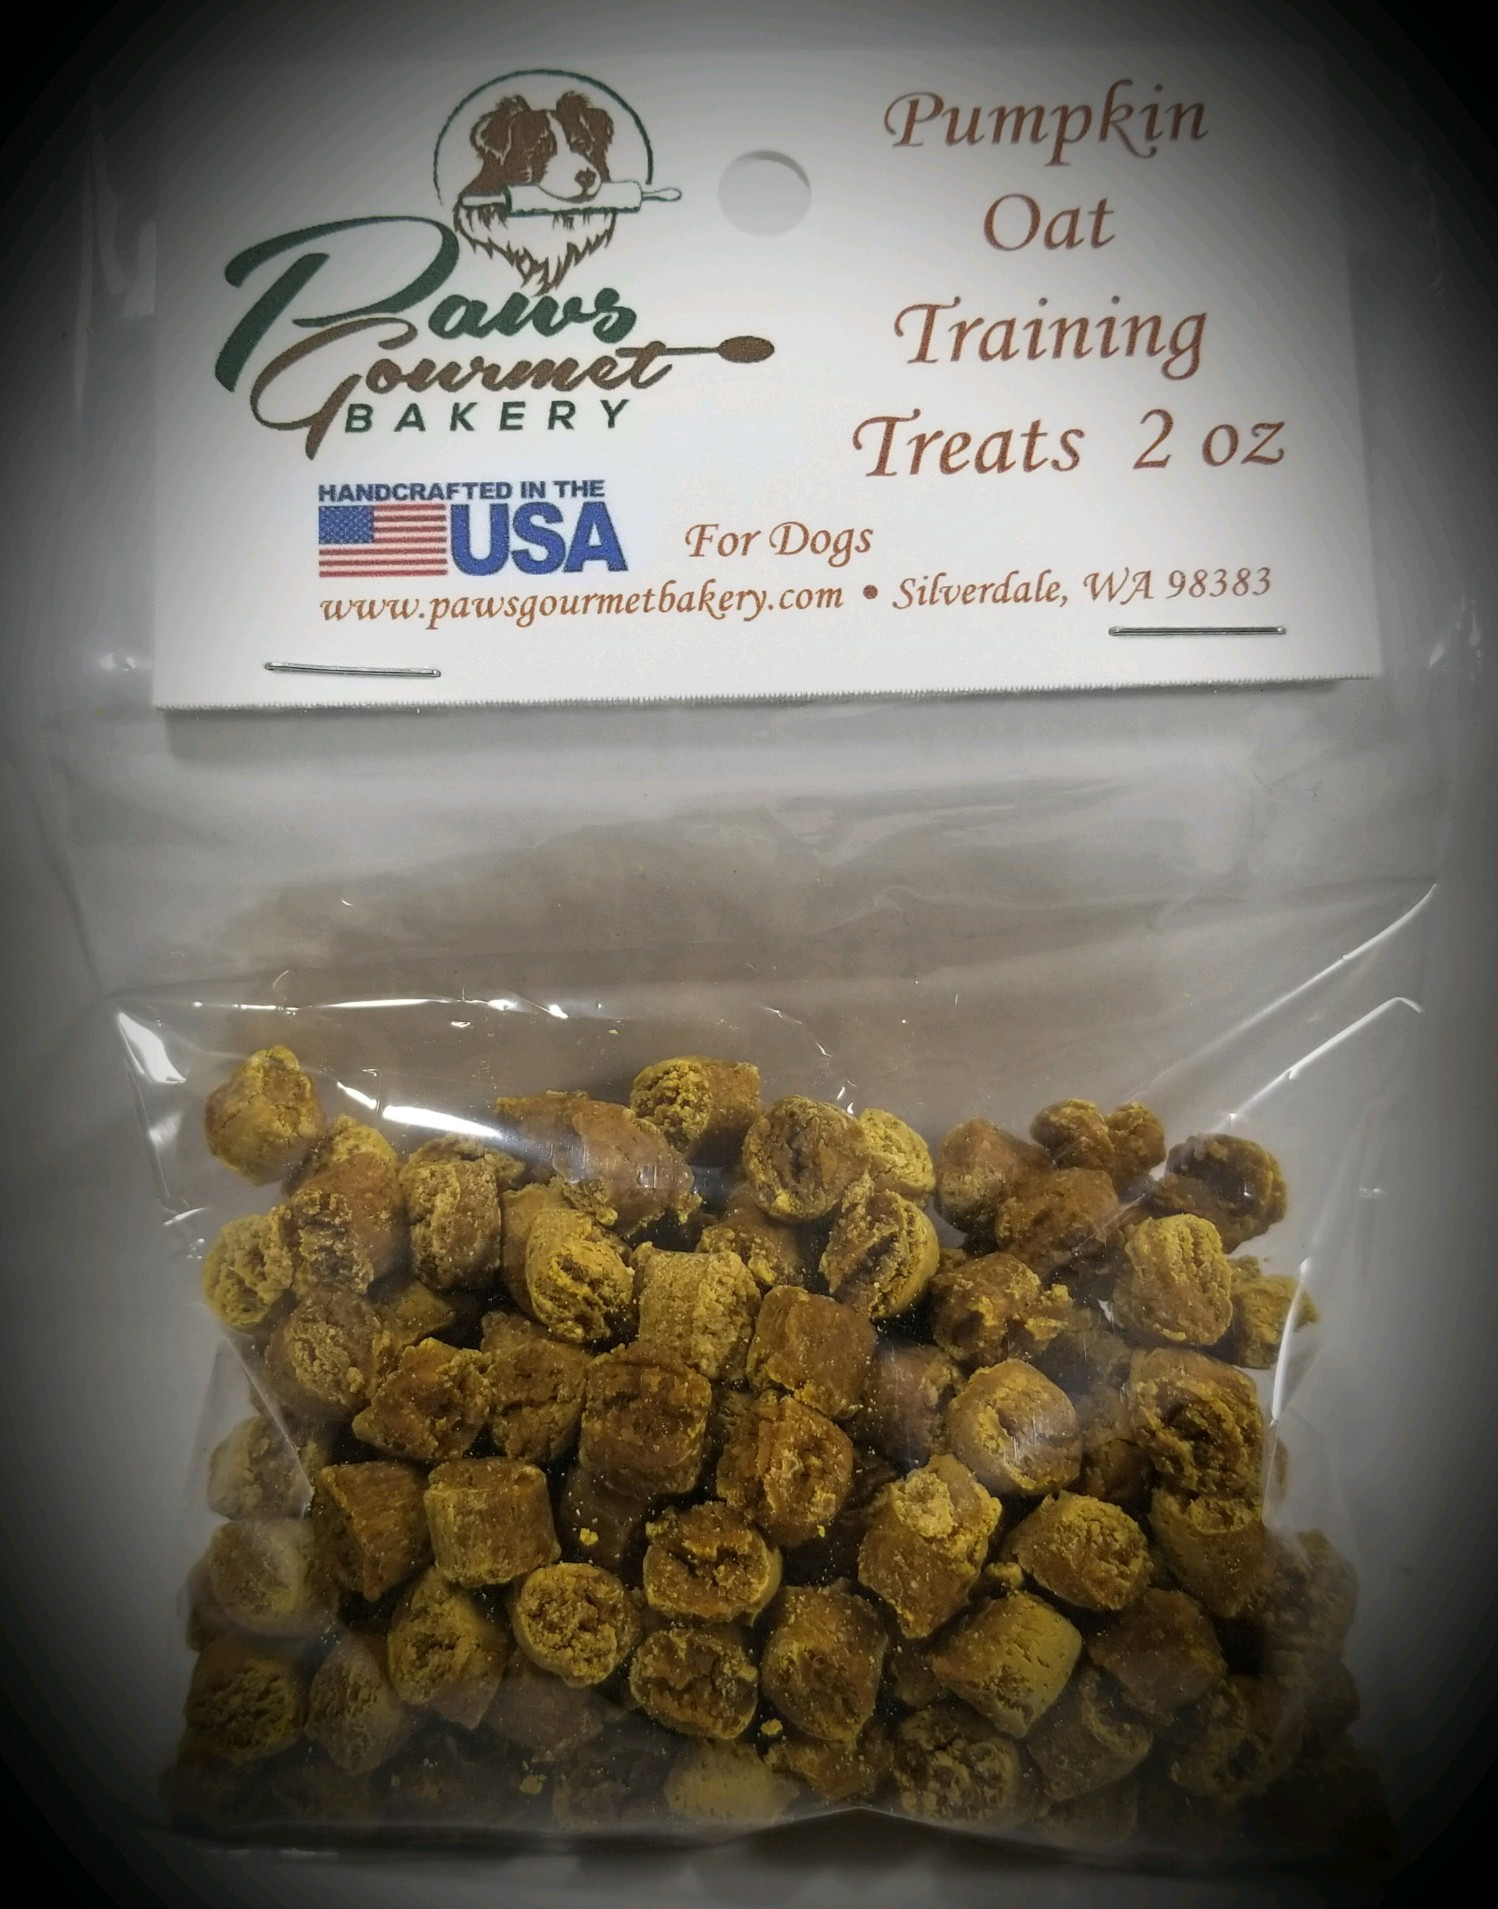 Pumpkin Oat Crunchy Training Treats 2 oz - Box of 6